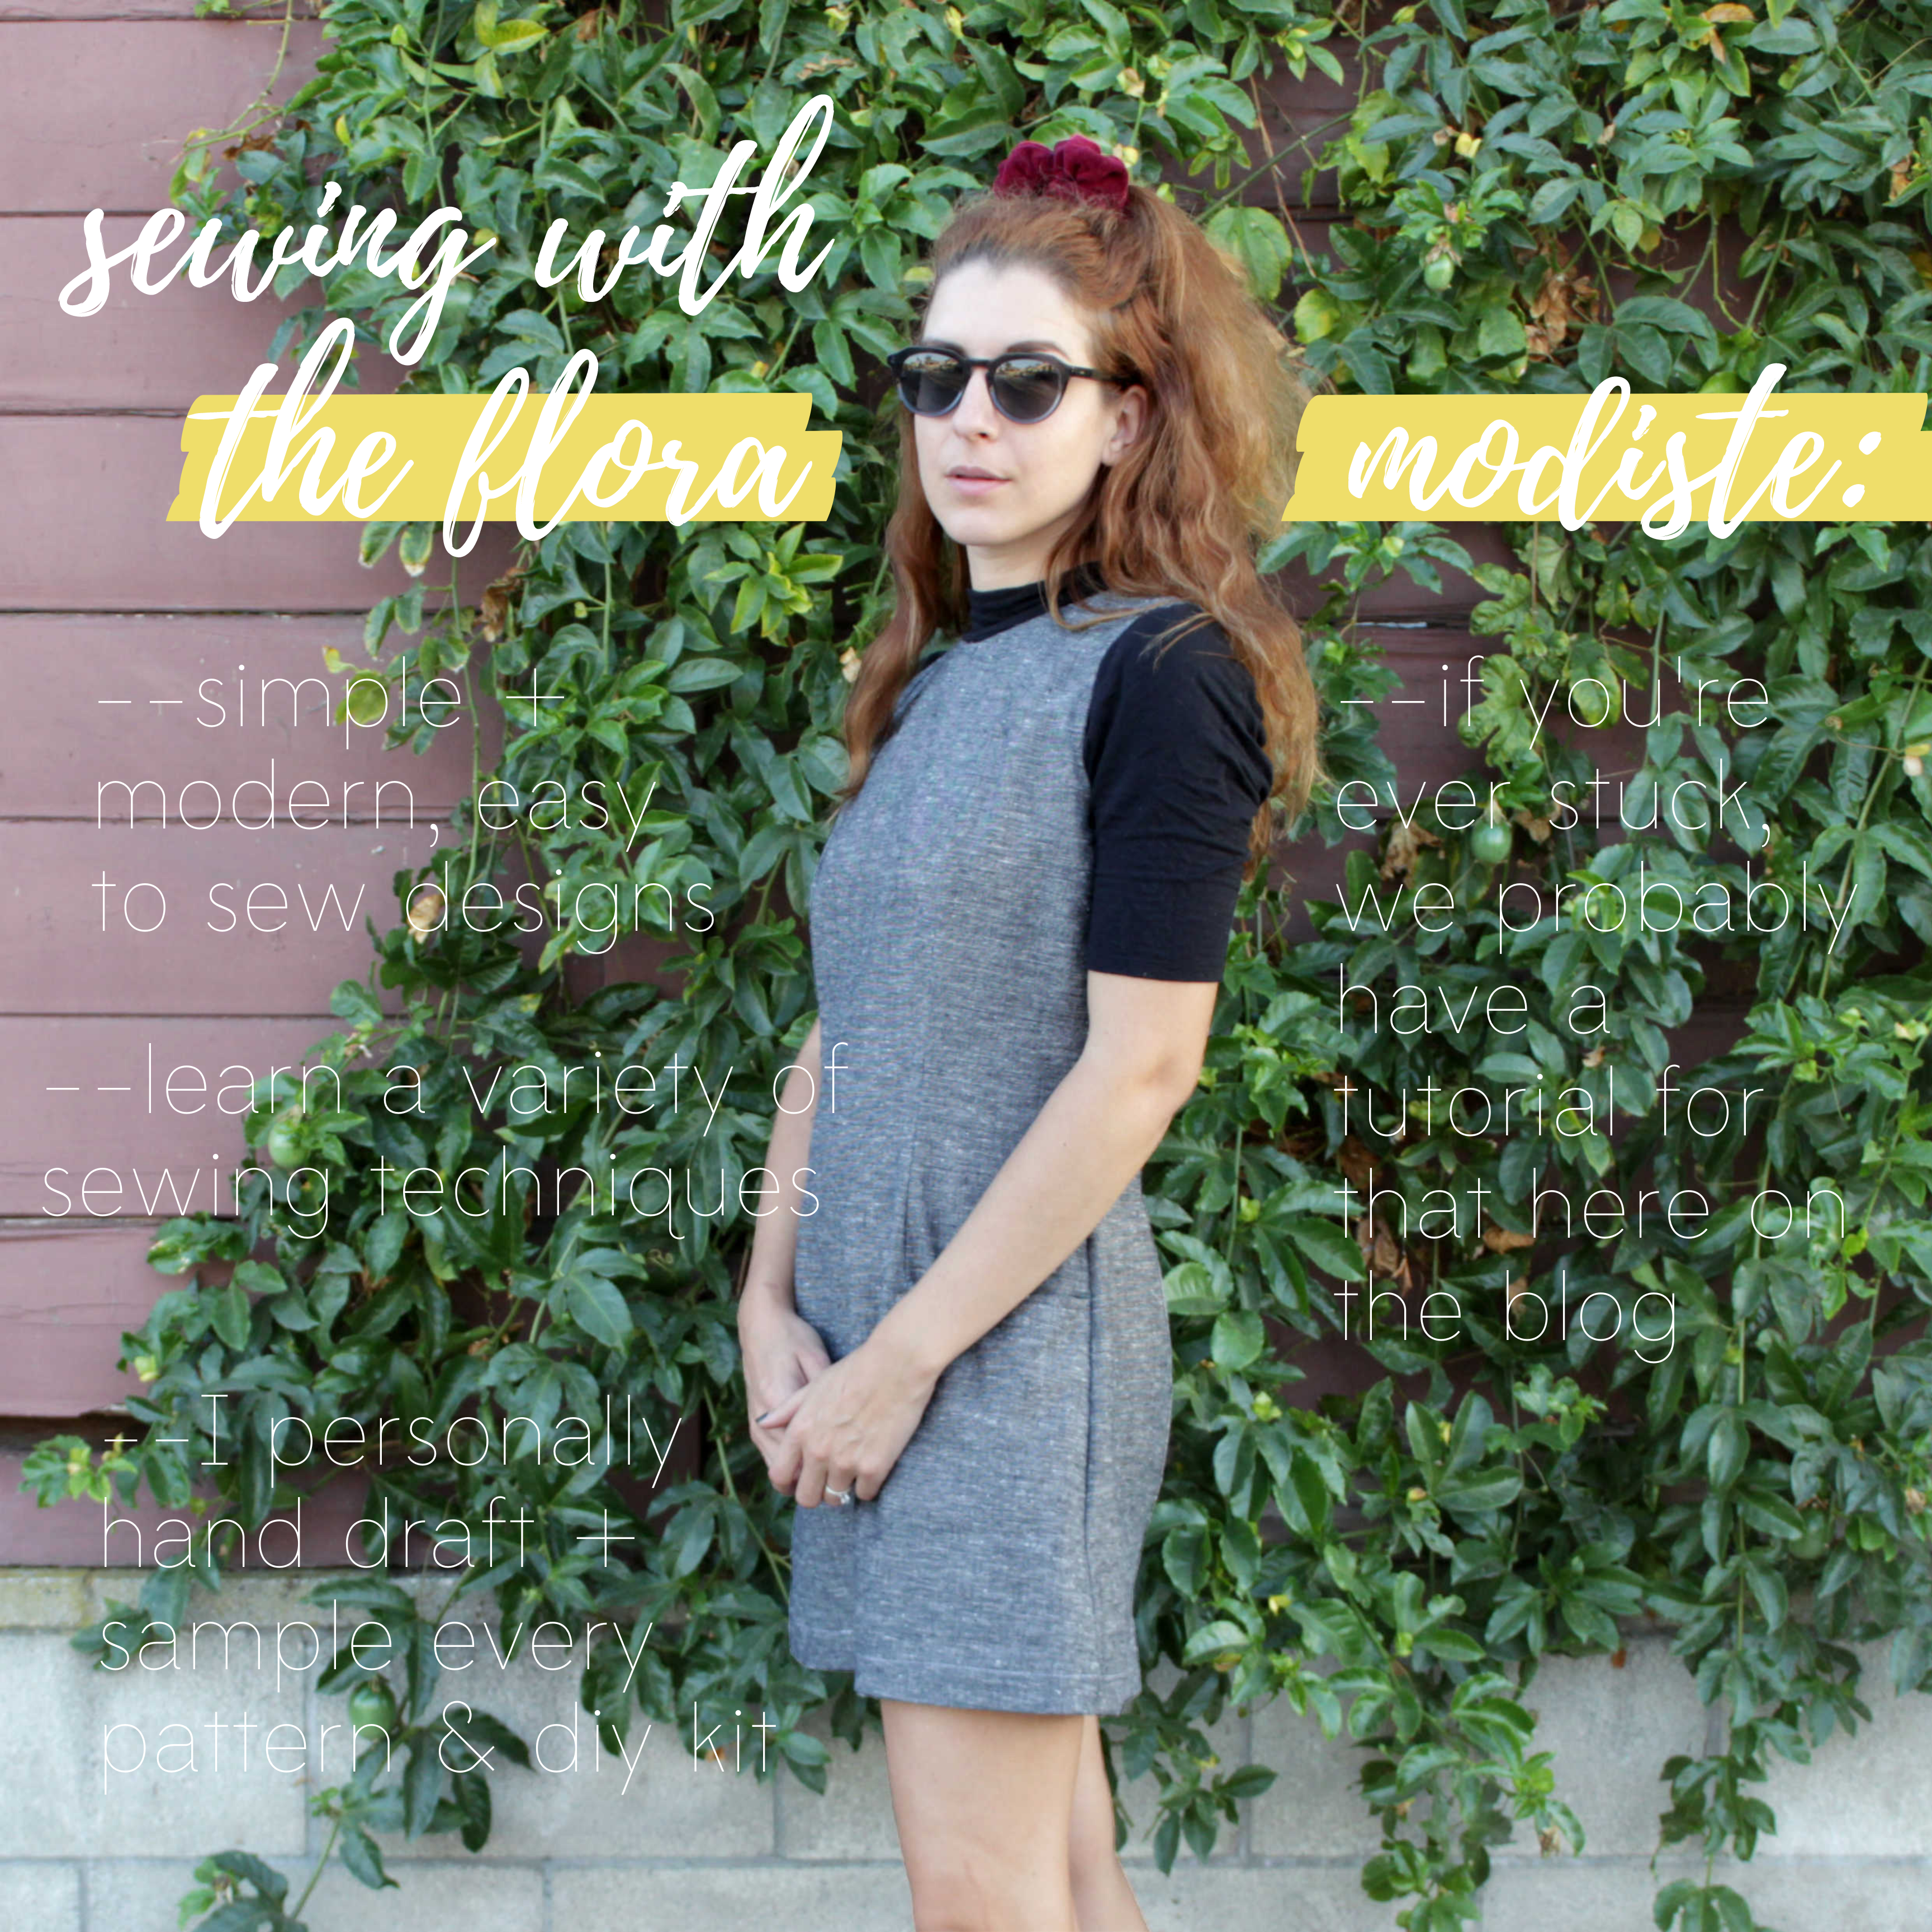 How To Sew Your Own Clothes Sewing Pattern Intro: Sewing With TFM